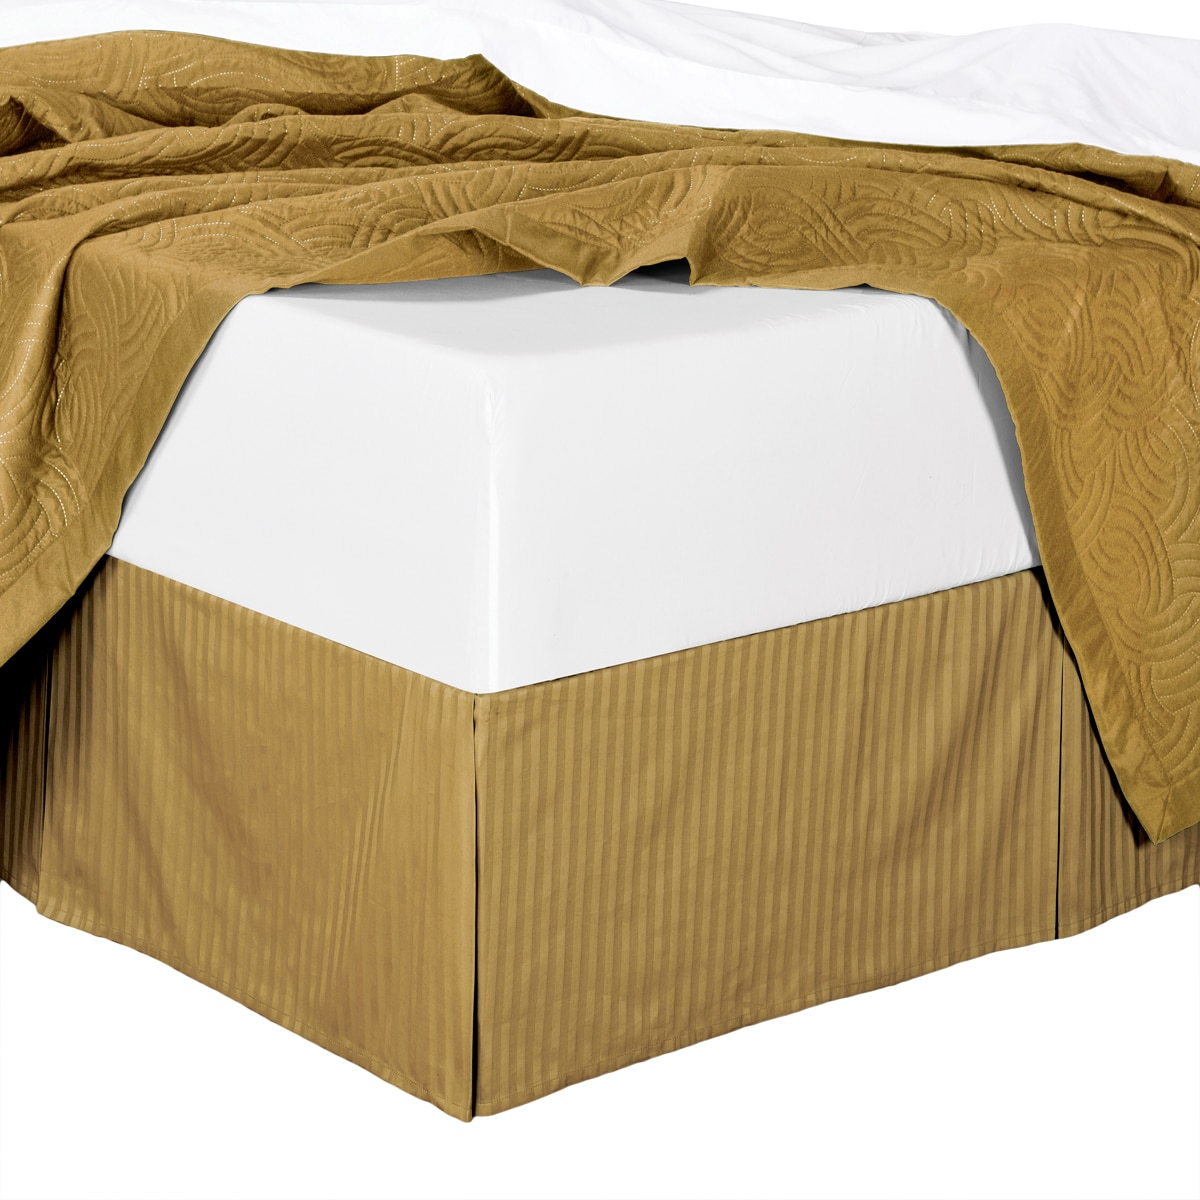 Bed Skirt 100% Cotton Damask Striped 300TC, Split Corner, 15-Inch Tailored Drop Pleated Dust Ruffle -White -Twin XL